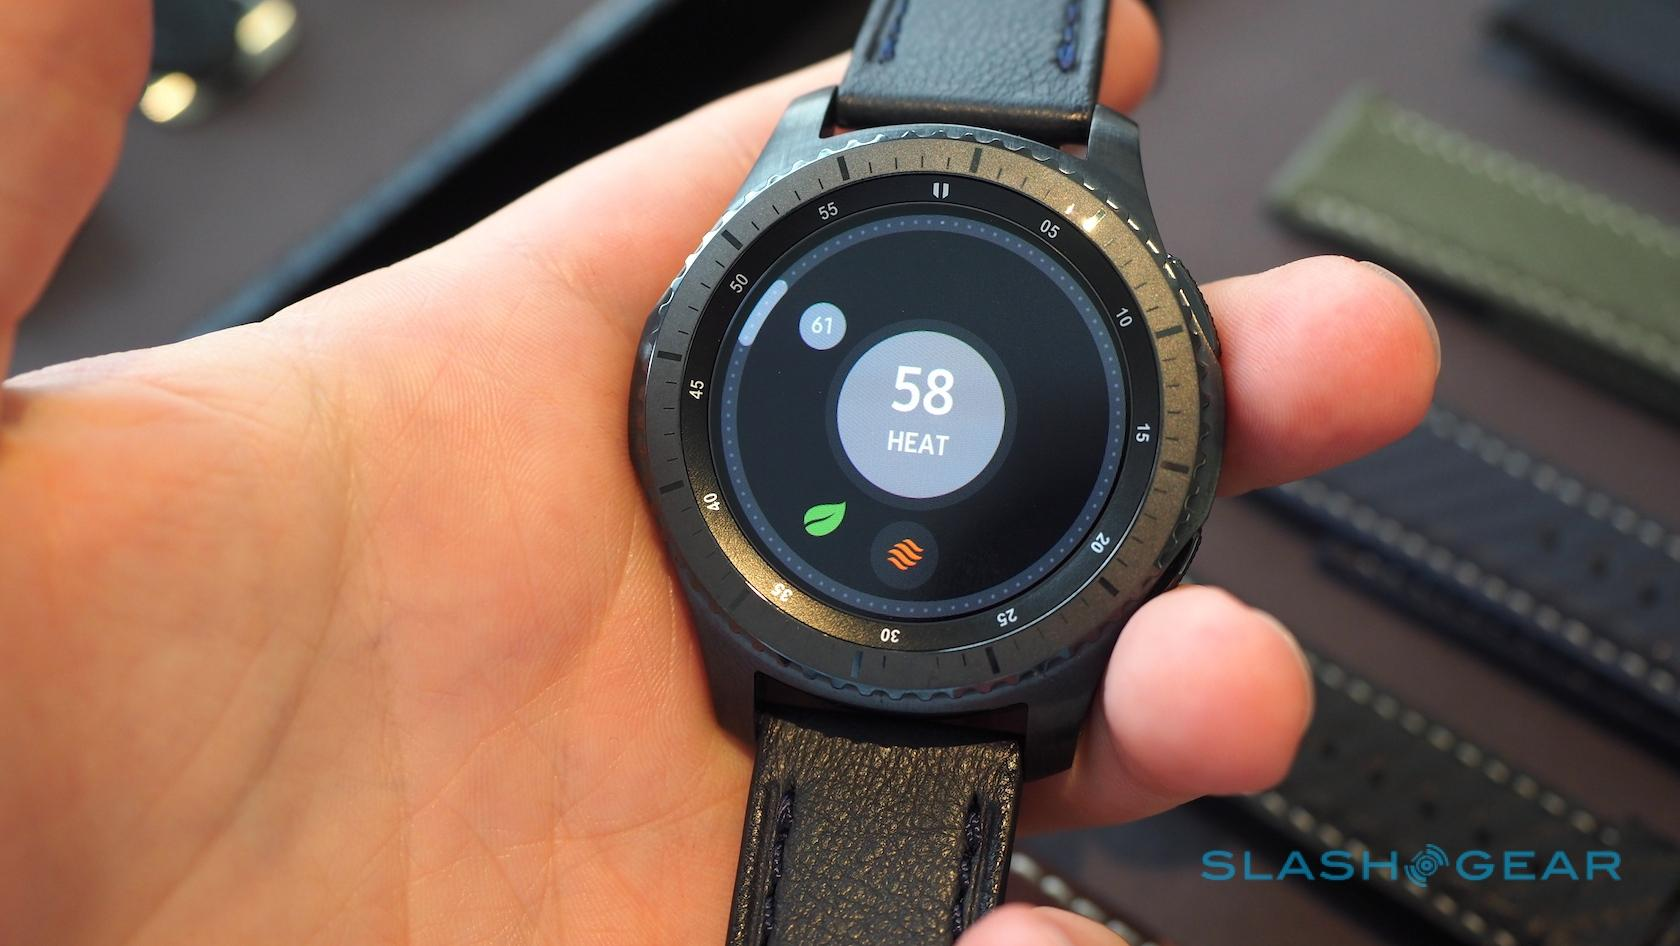 Samsung Gear S3 hands-on: Samsung Pay, LTE, rugged